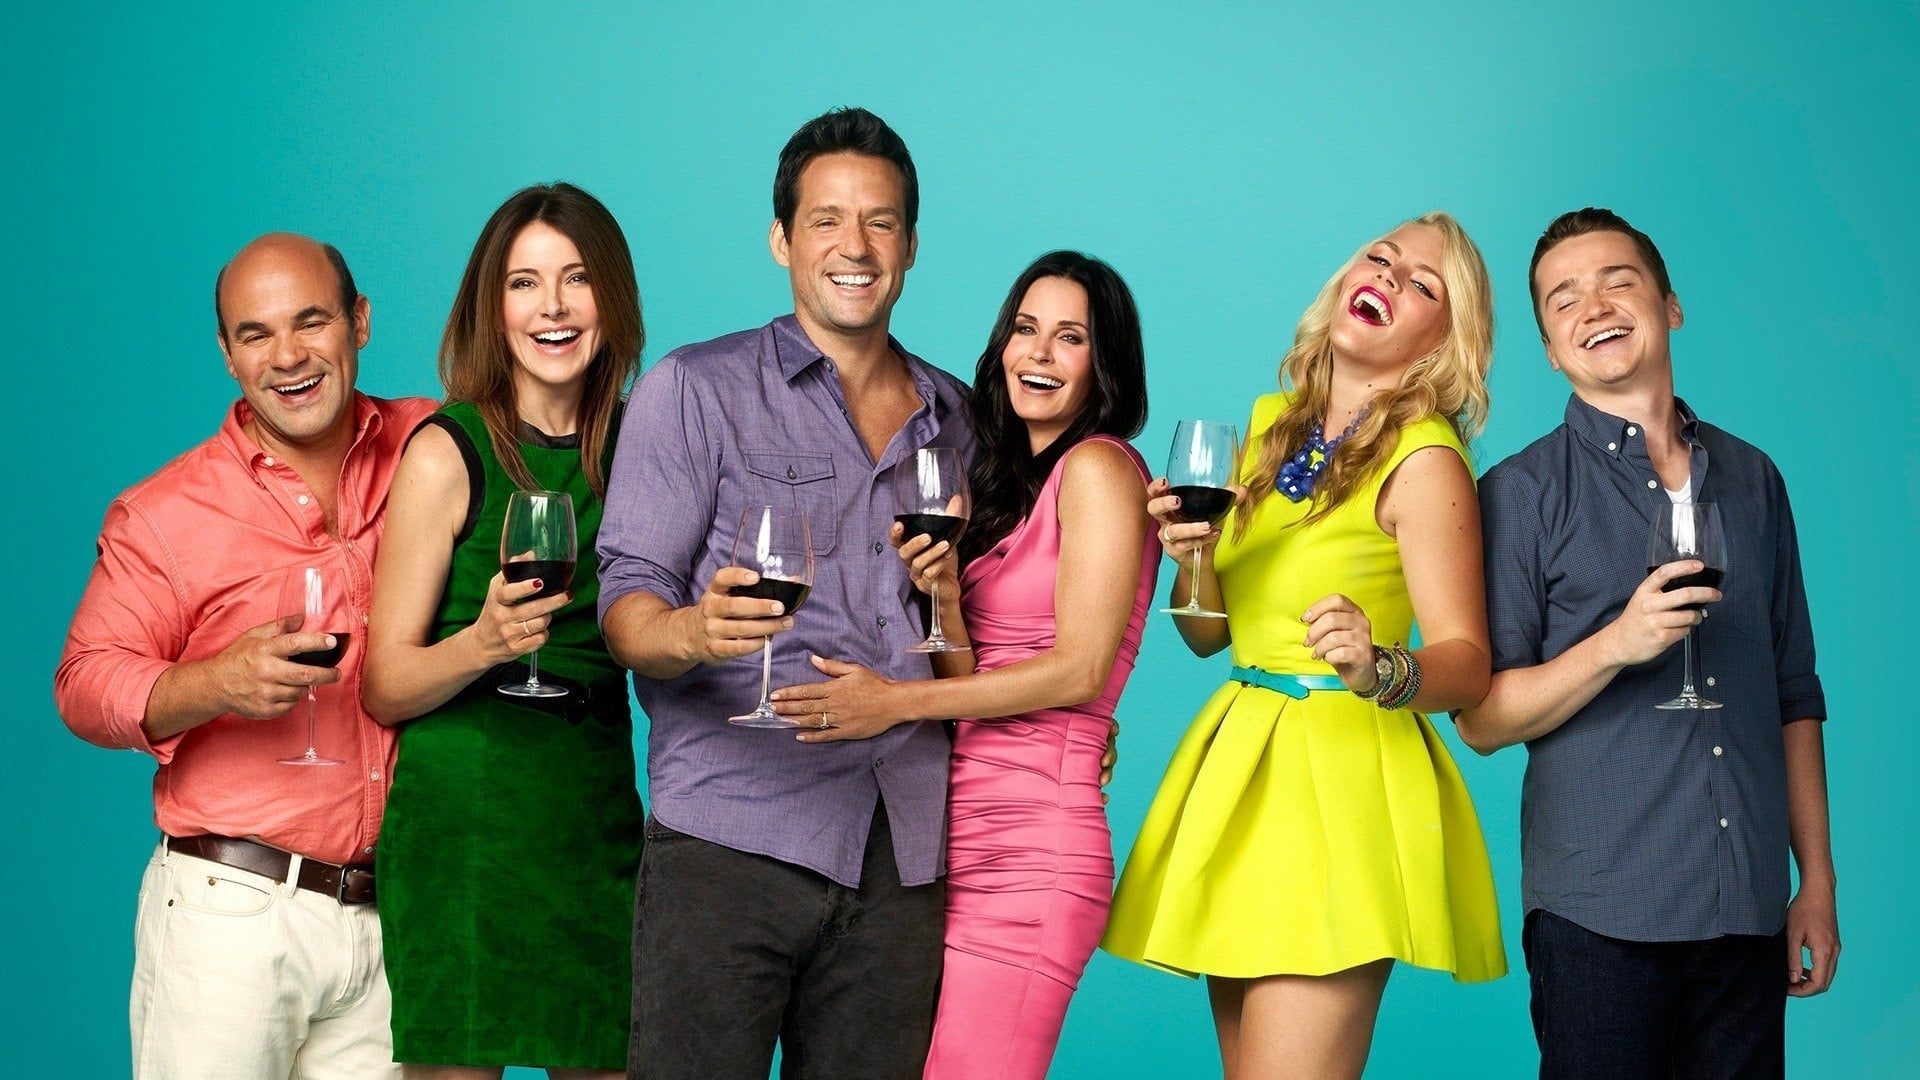 TBS announces date final season of Cougar Town